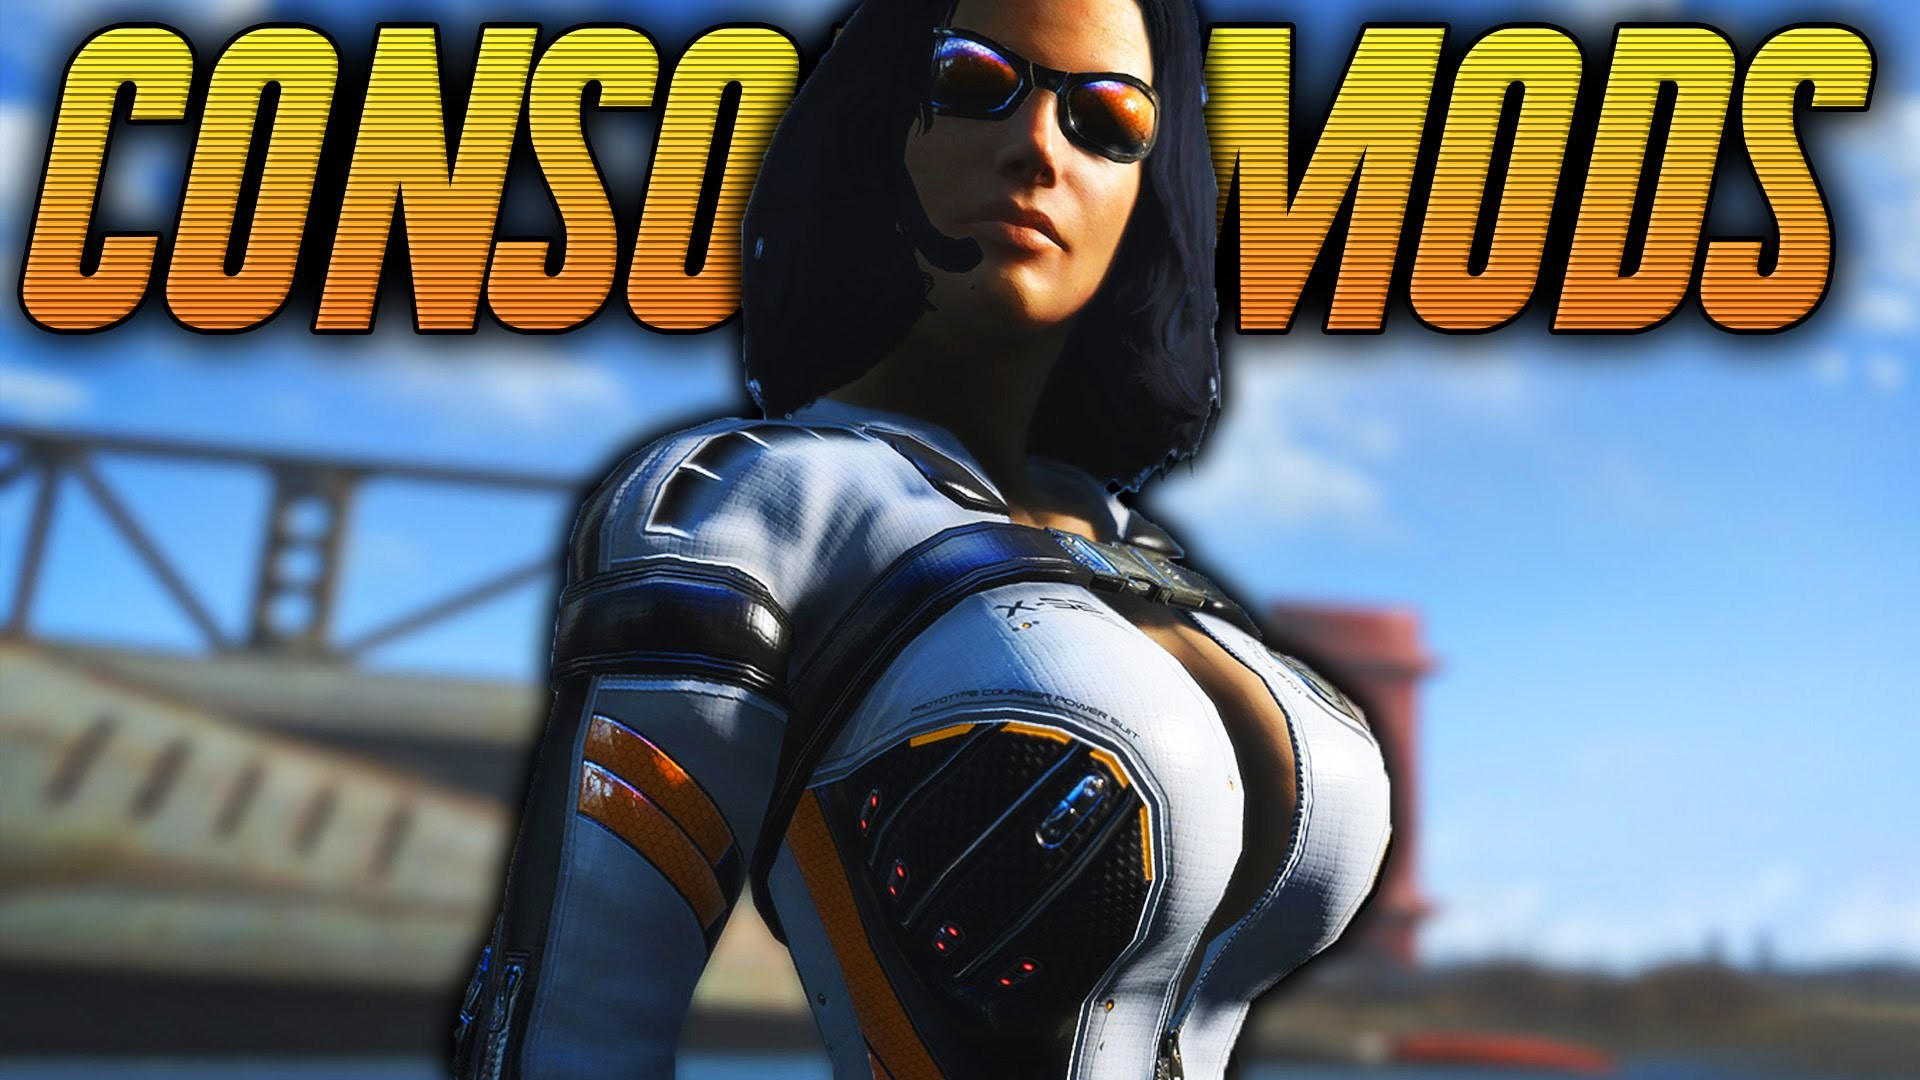 1920x1080 Fallout 4 Console Mods - 5 Awesome Mods To Download #4 (Xbox One Mods) -  YouTube